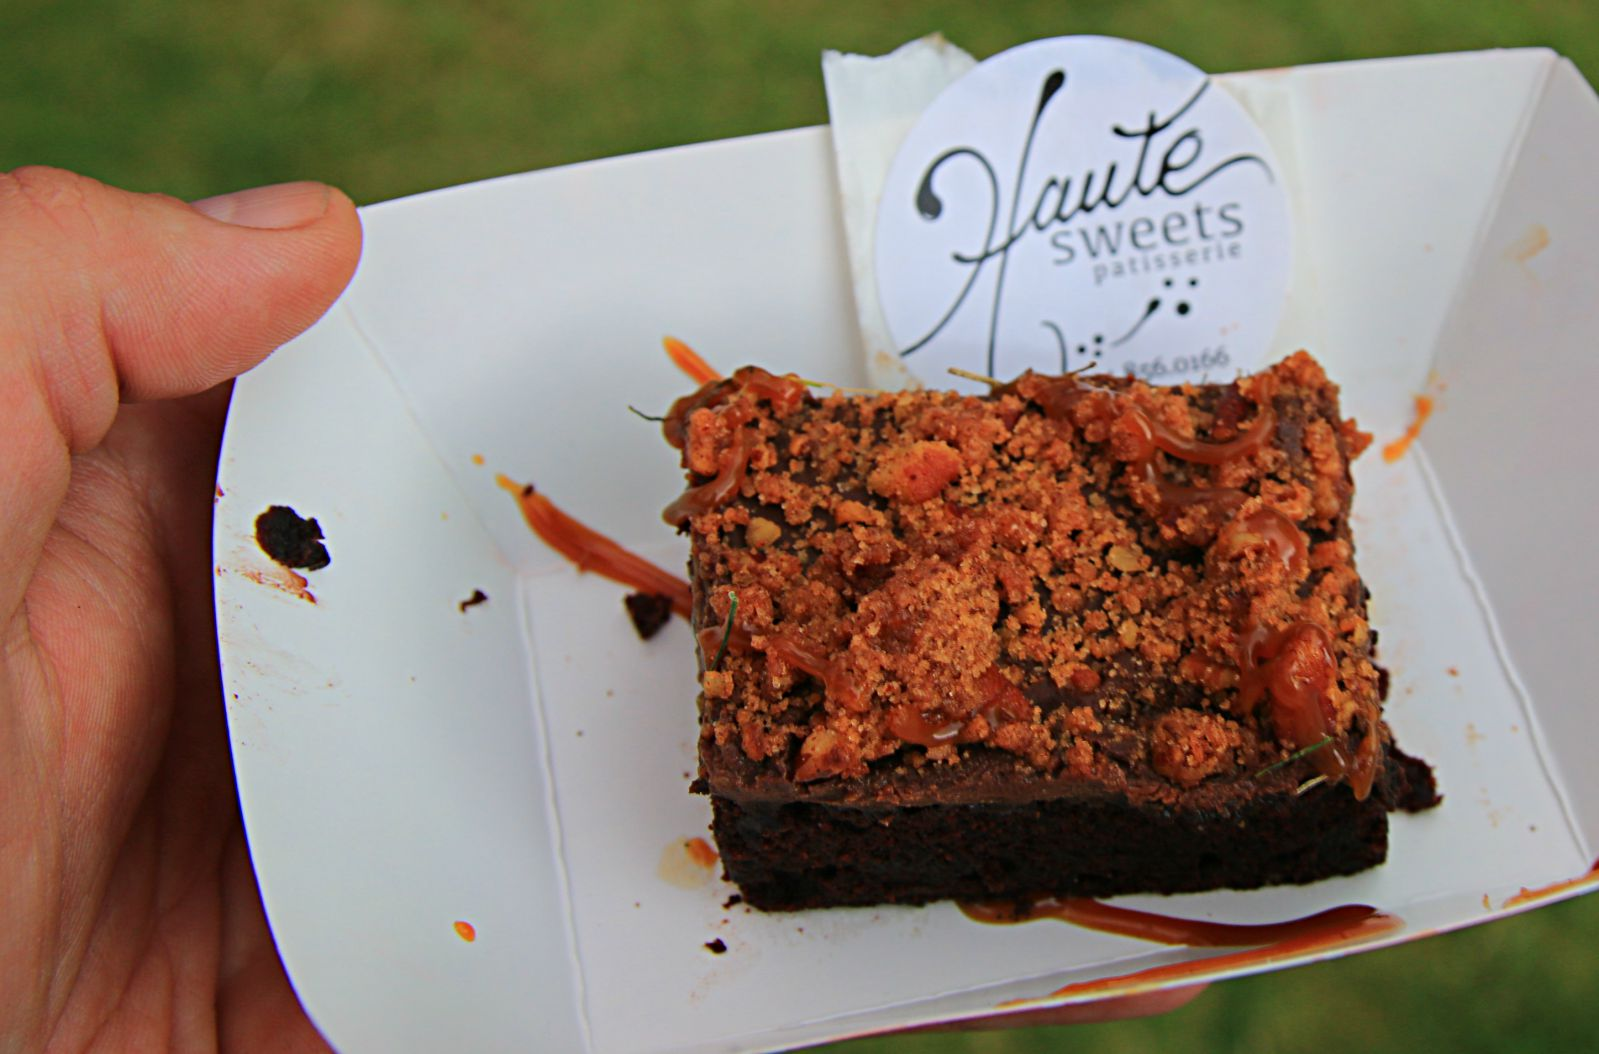 Haute sweets provided dessert at Smoked Dallas 2016